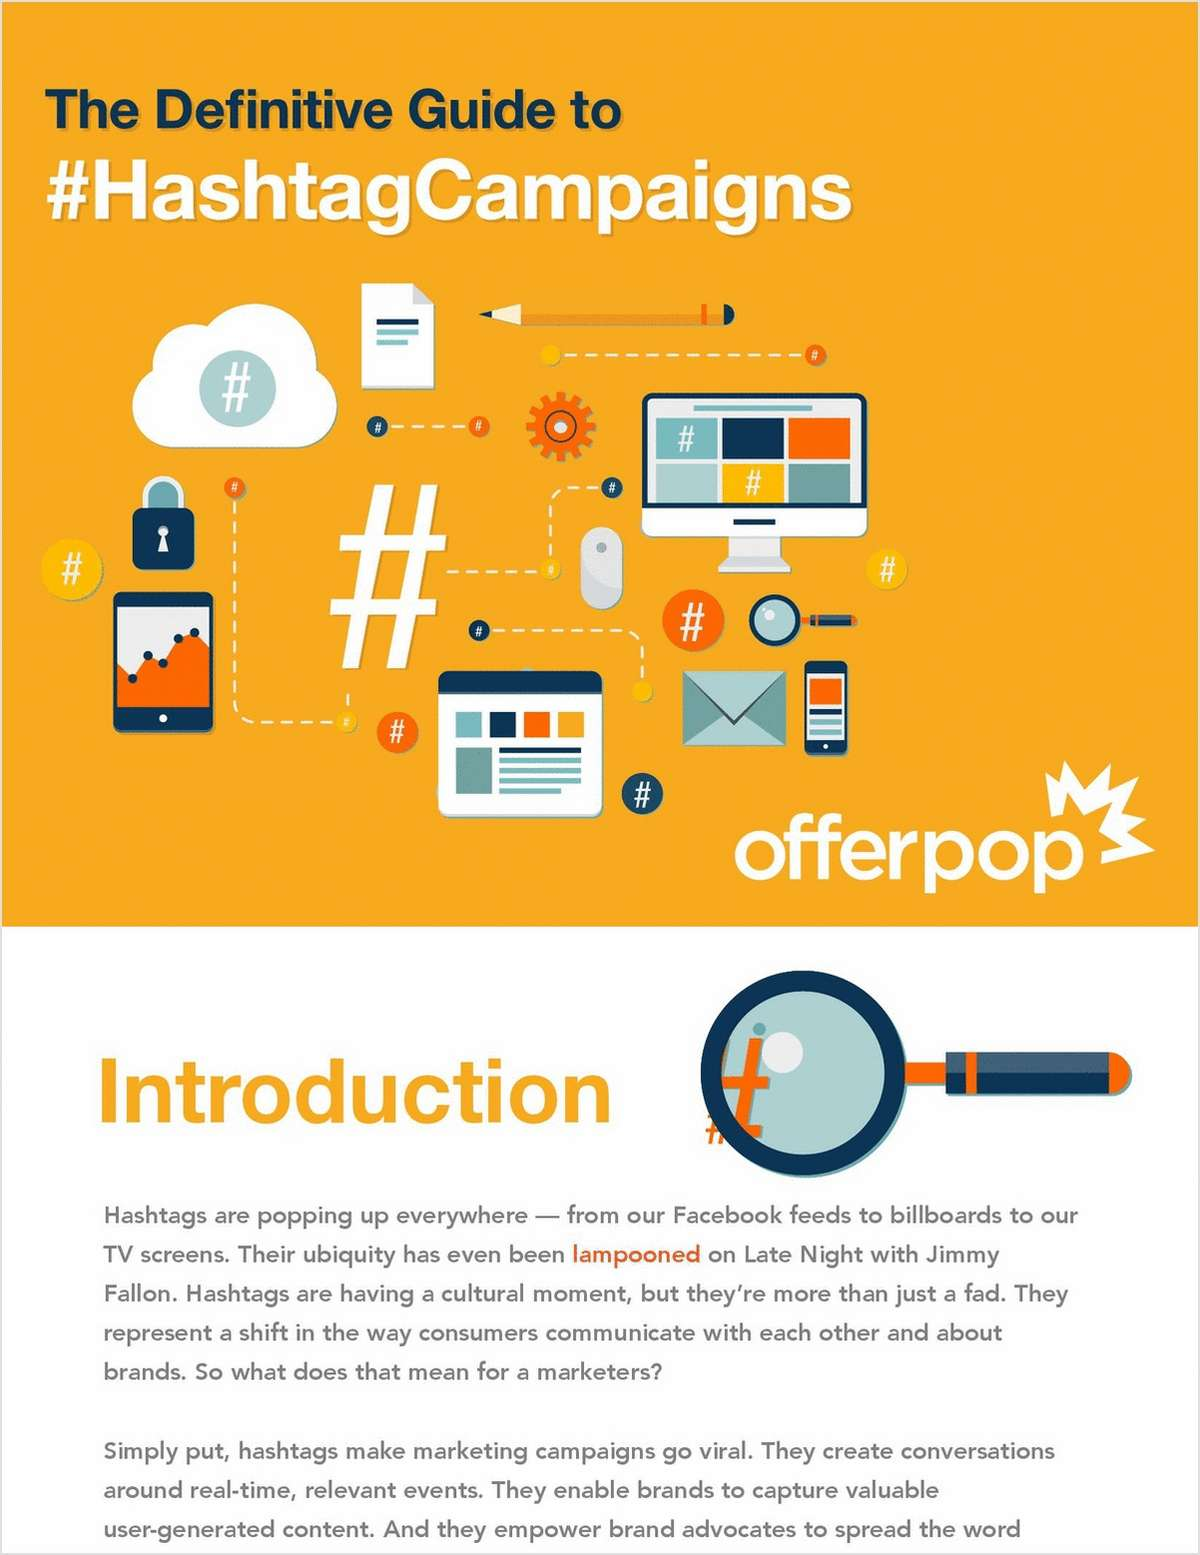 The Definitive Guide to #HashtagCampaigns